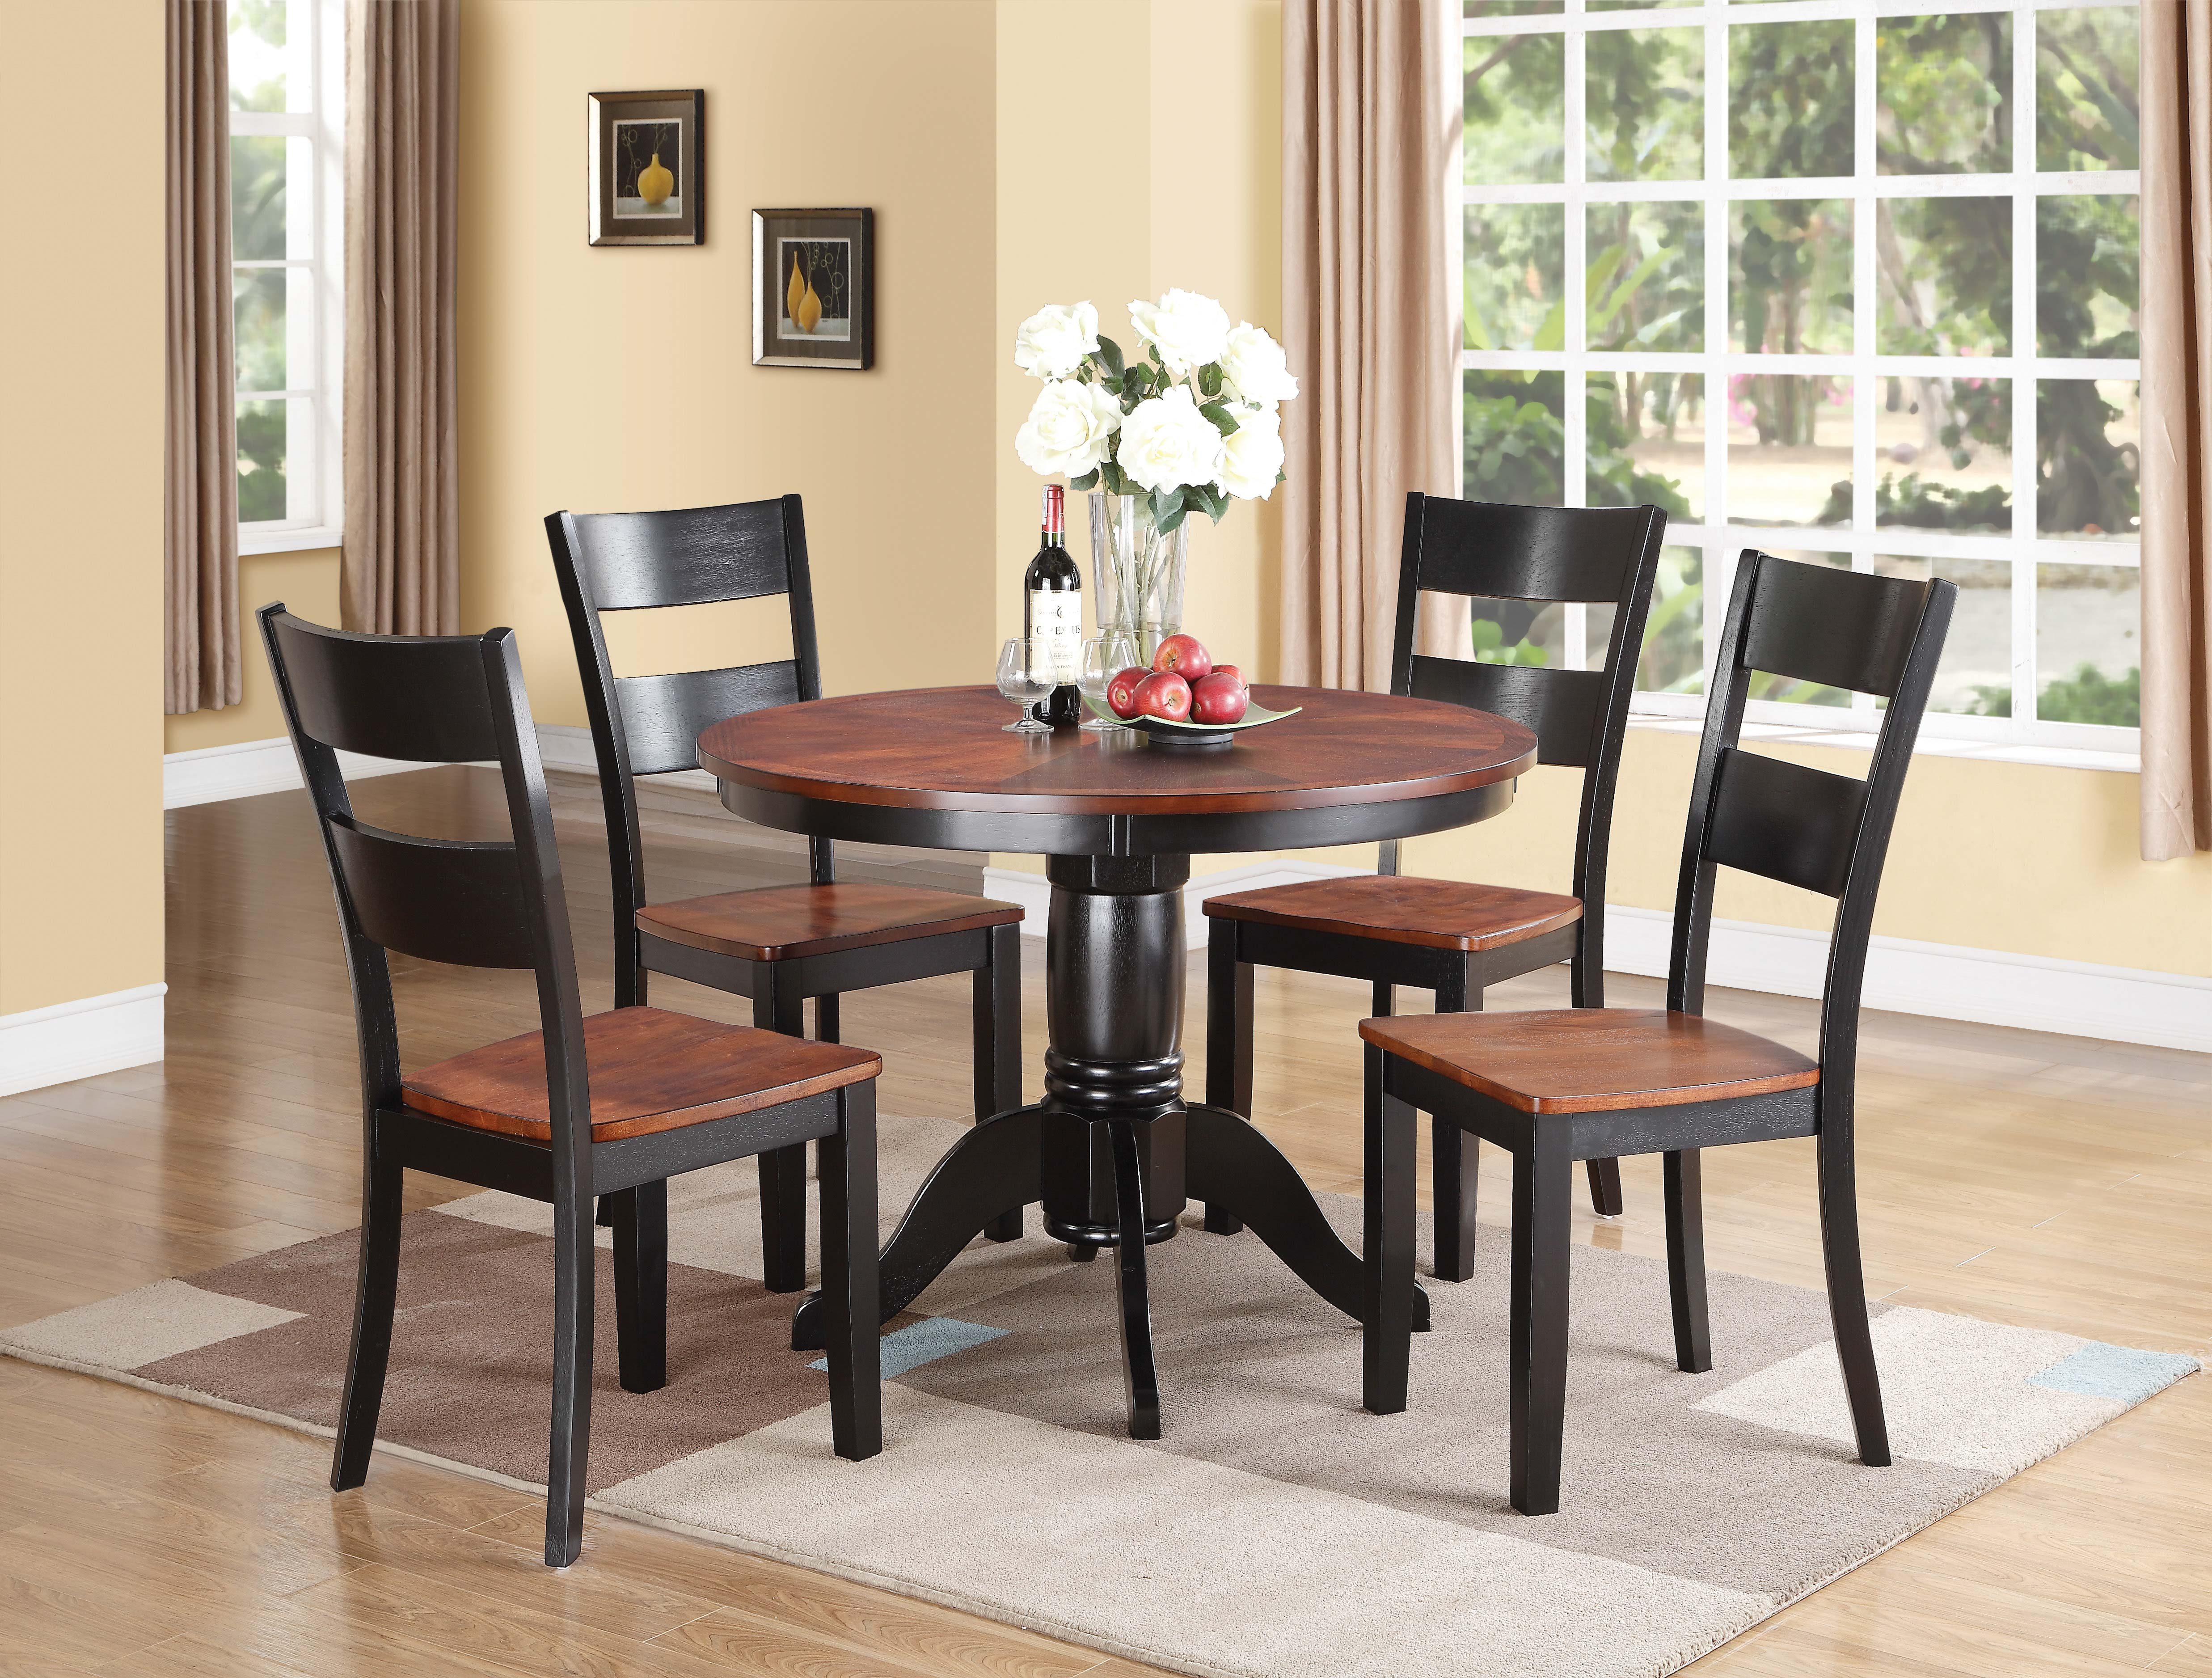 8202 Black & Cherry Pedestal Dining  Awfco Catalog Site. Solid Wood Dining Room Table. Small Console Desk. Corner Computer Desk Amazon. Cheap Table Cloths. Help Desk Ticketing Software Reviews. Sliding Desk Drawer Organizer Tray. Metal Reception Desk. Kitchen Drawer Divider